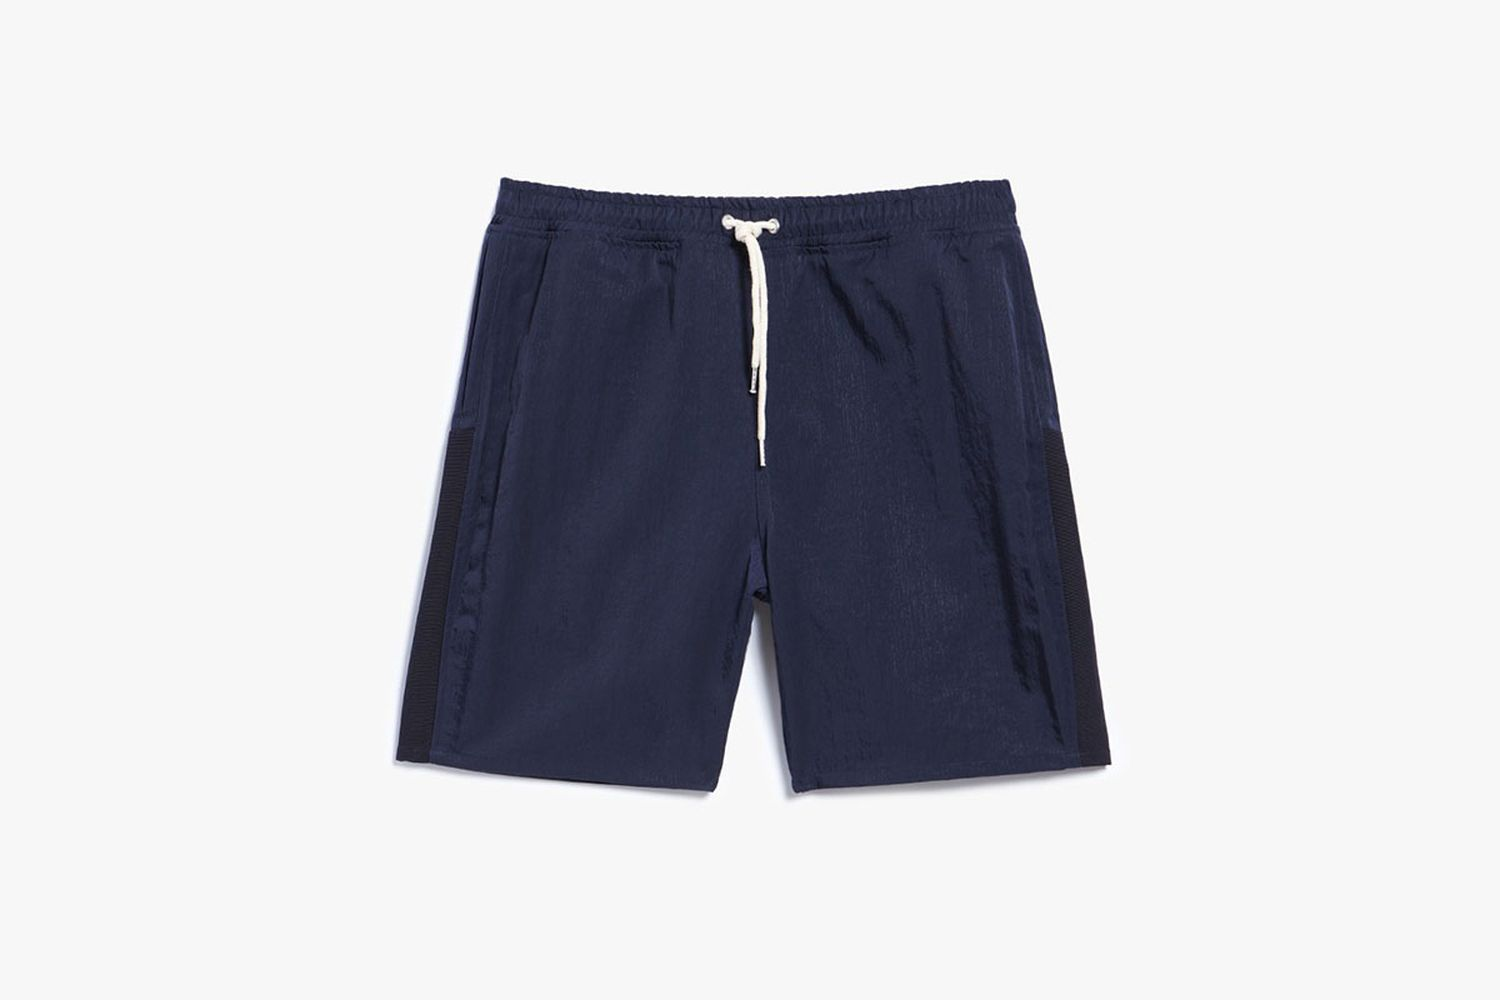 10 Stylish Summer Shorts to Beat the Heat in for Under $100